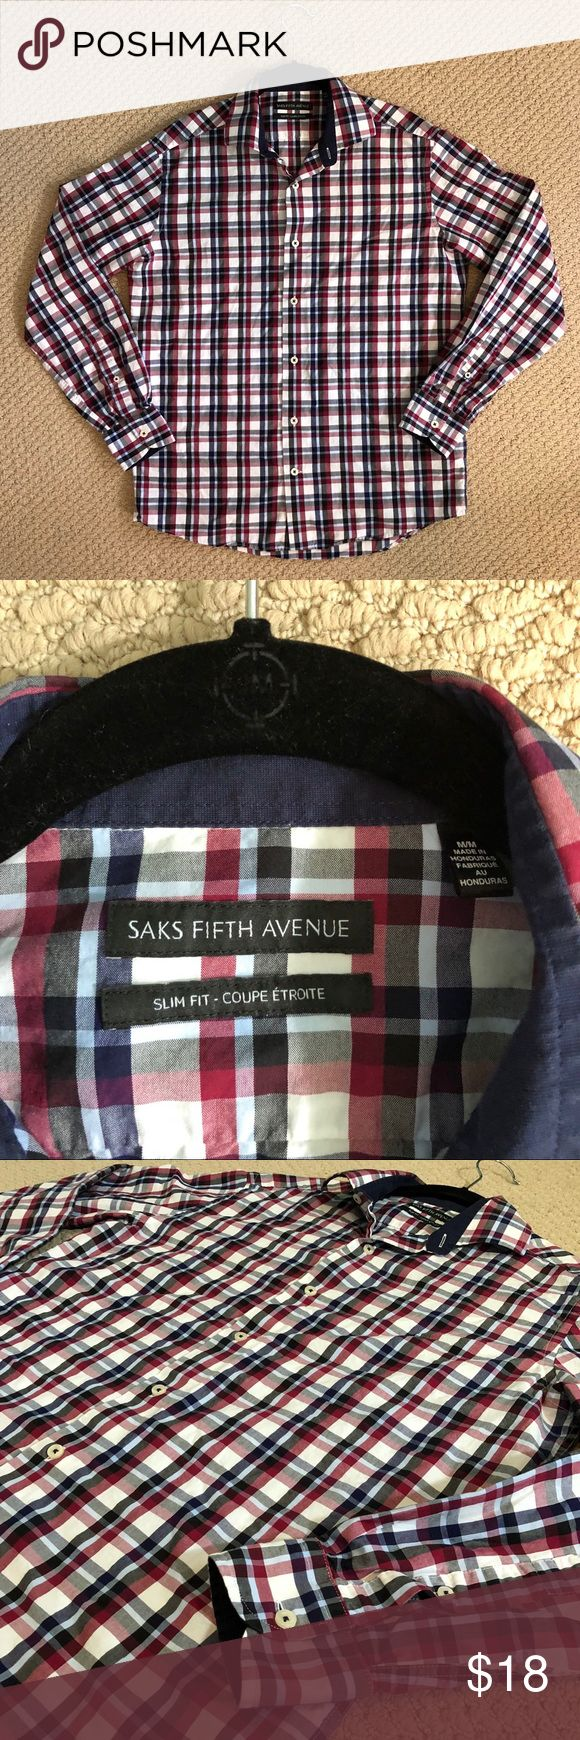 SALE! EUC Saks Fifth Avenue Plaid Button Down This button down from Saks Fifth Avenue is in excellent condition! It features a red, blue, and black plaid design and a slim fit. Perfect with jeans! Size Medium Saks Fifth Avenue Shirts Casual Button Down Shirts